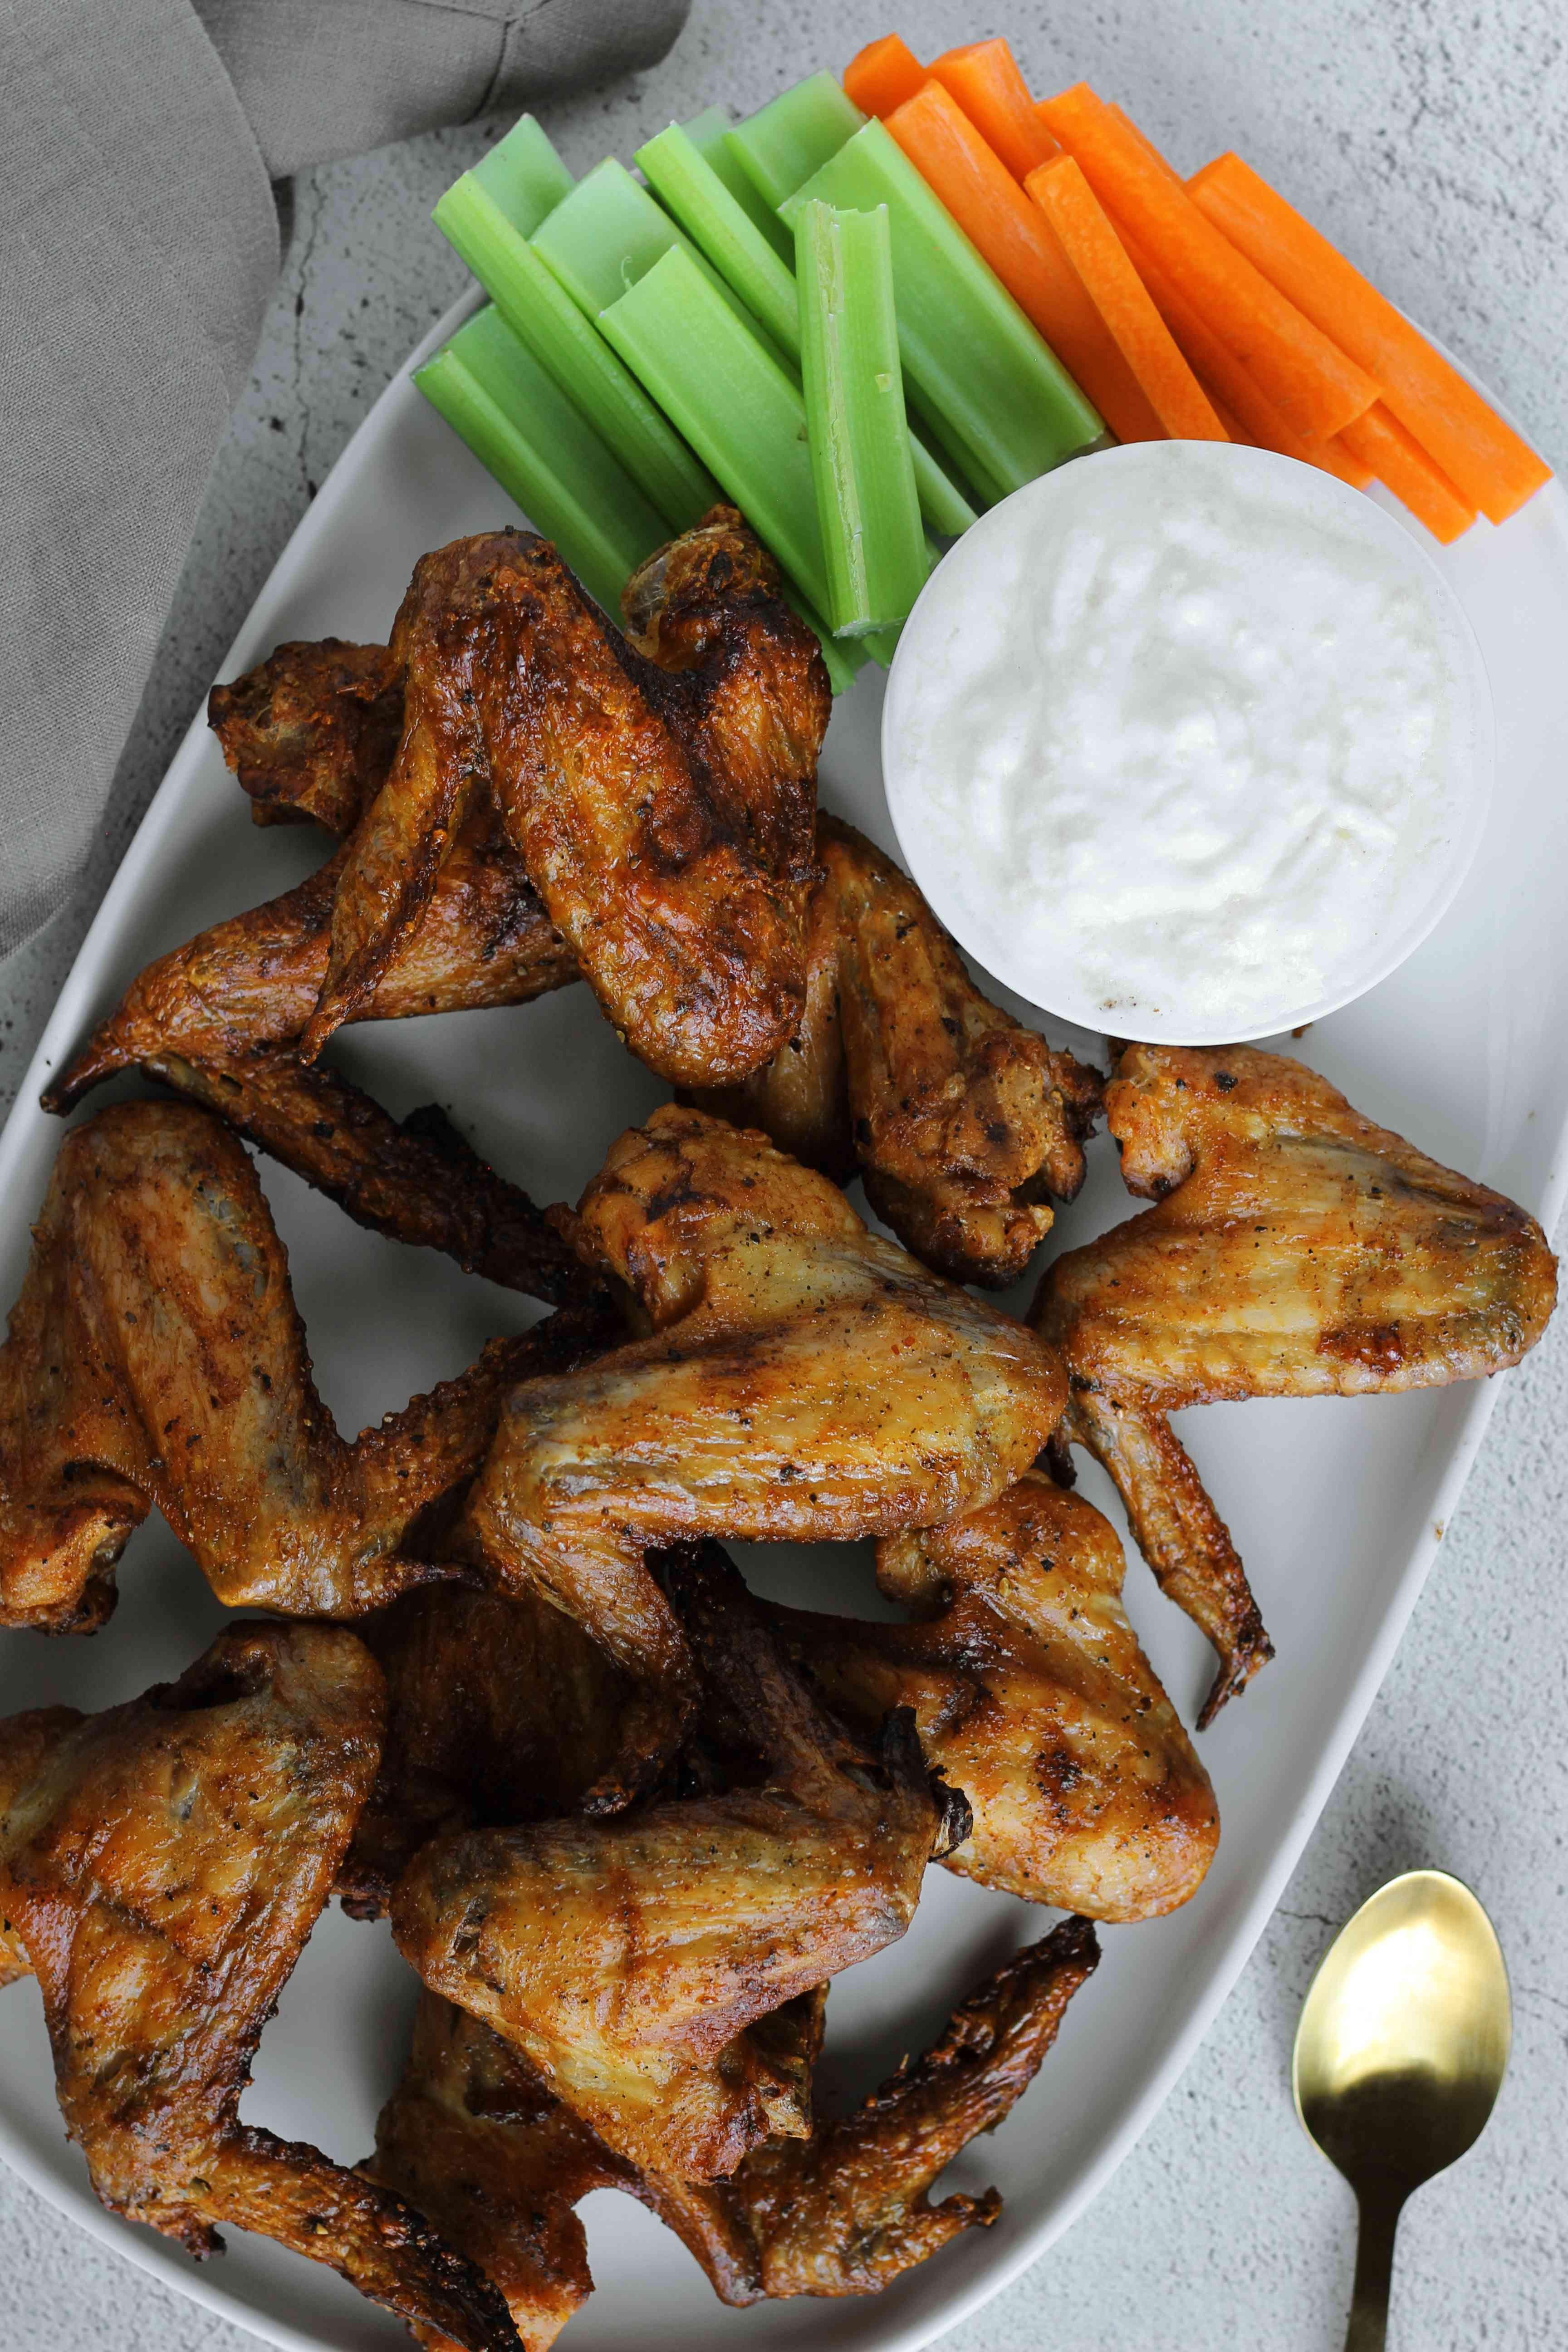 Salt and vinegar wings, dipping sauce, celery, and carrots